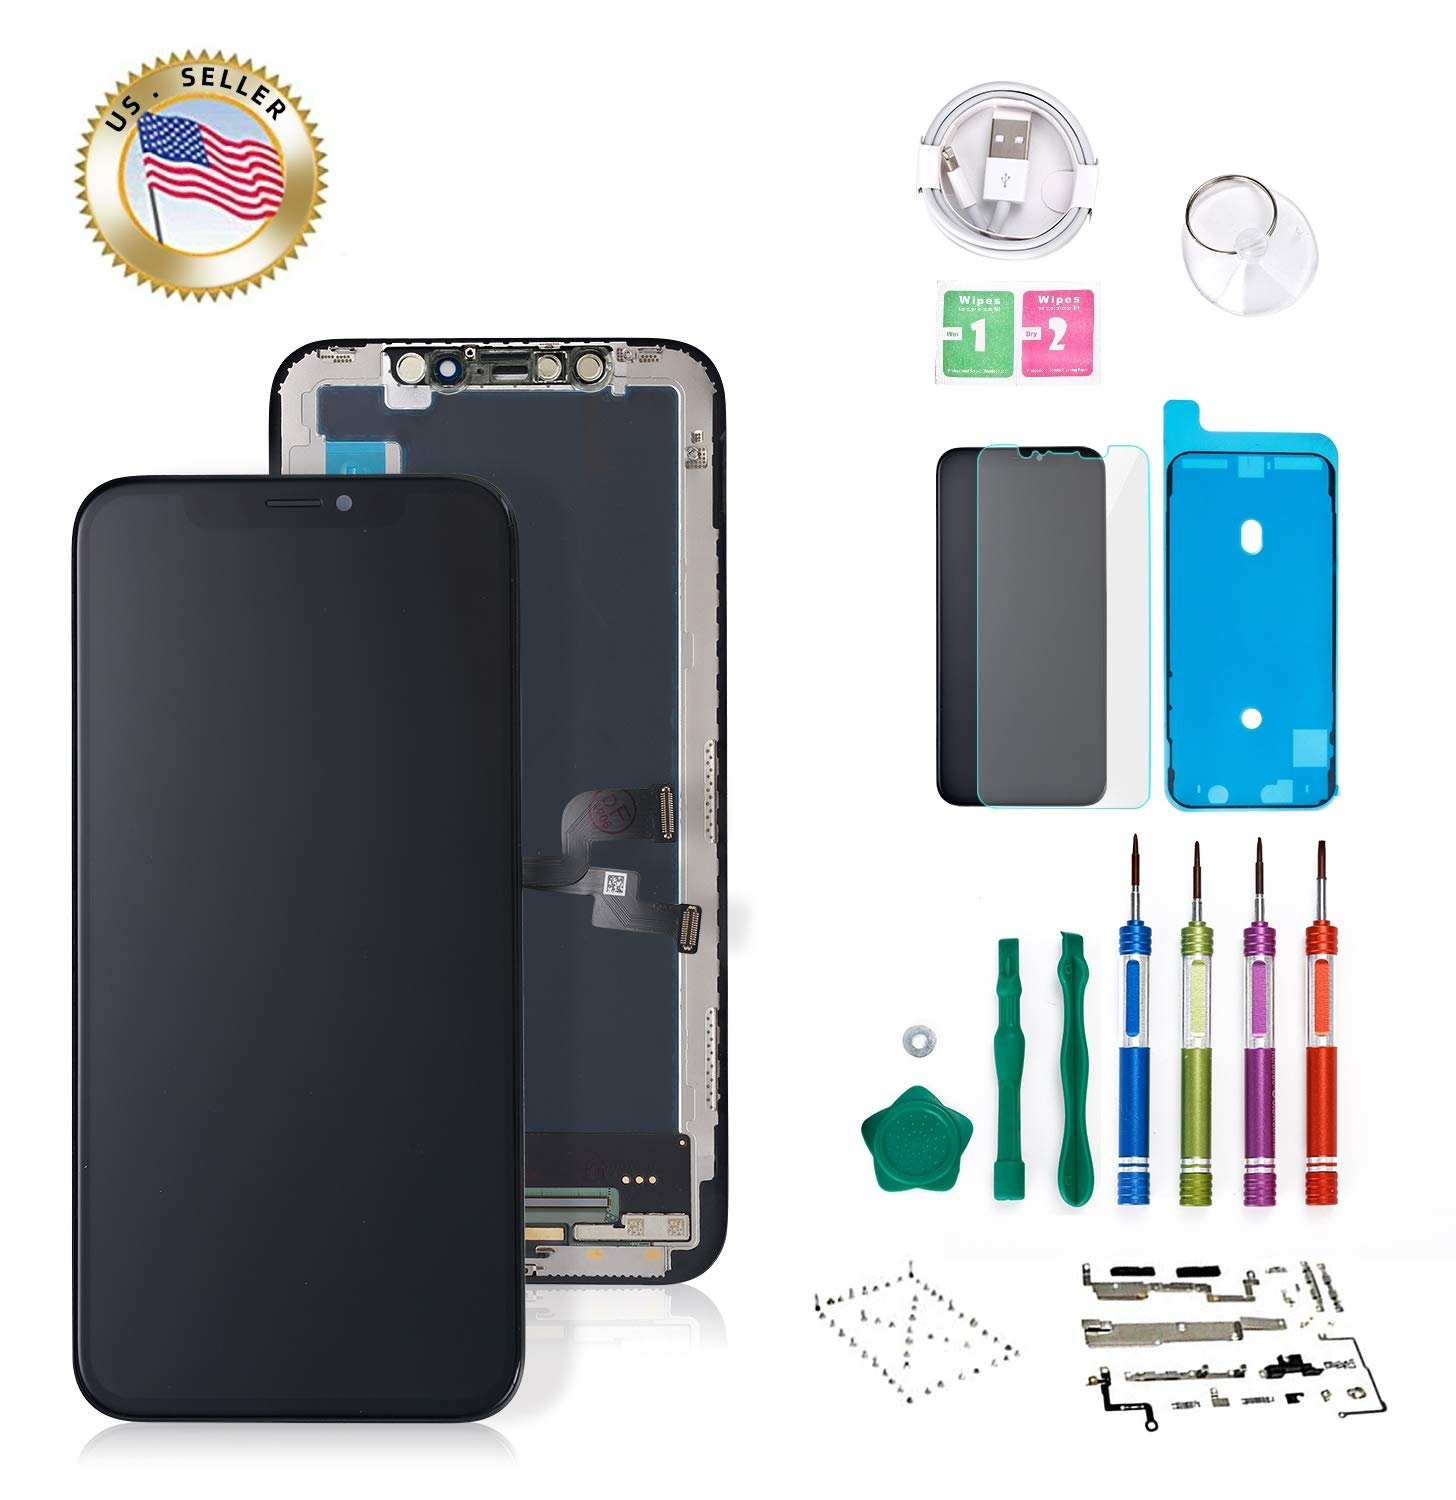 Screenmaster Screen Replacement for iPhone X OLED 5.8 inch [NOT LCD] Touch Screen Display Digitizer Repair Kit Assembly with Complete Repair Tools by Screenmaster